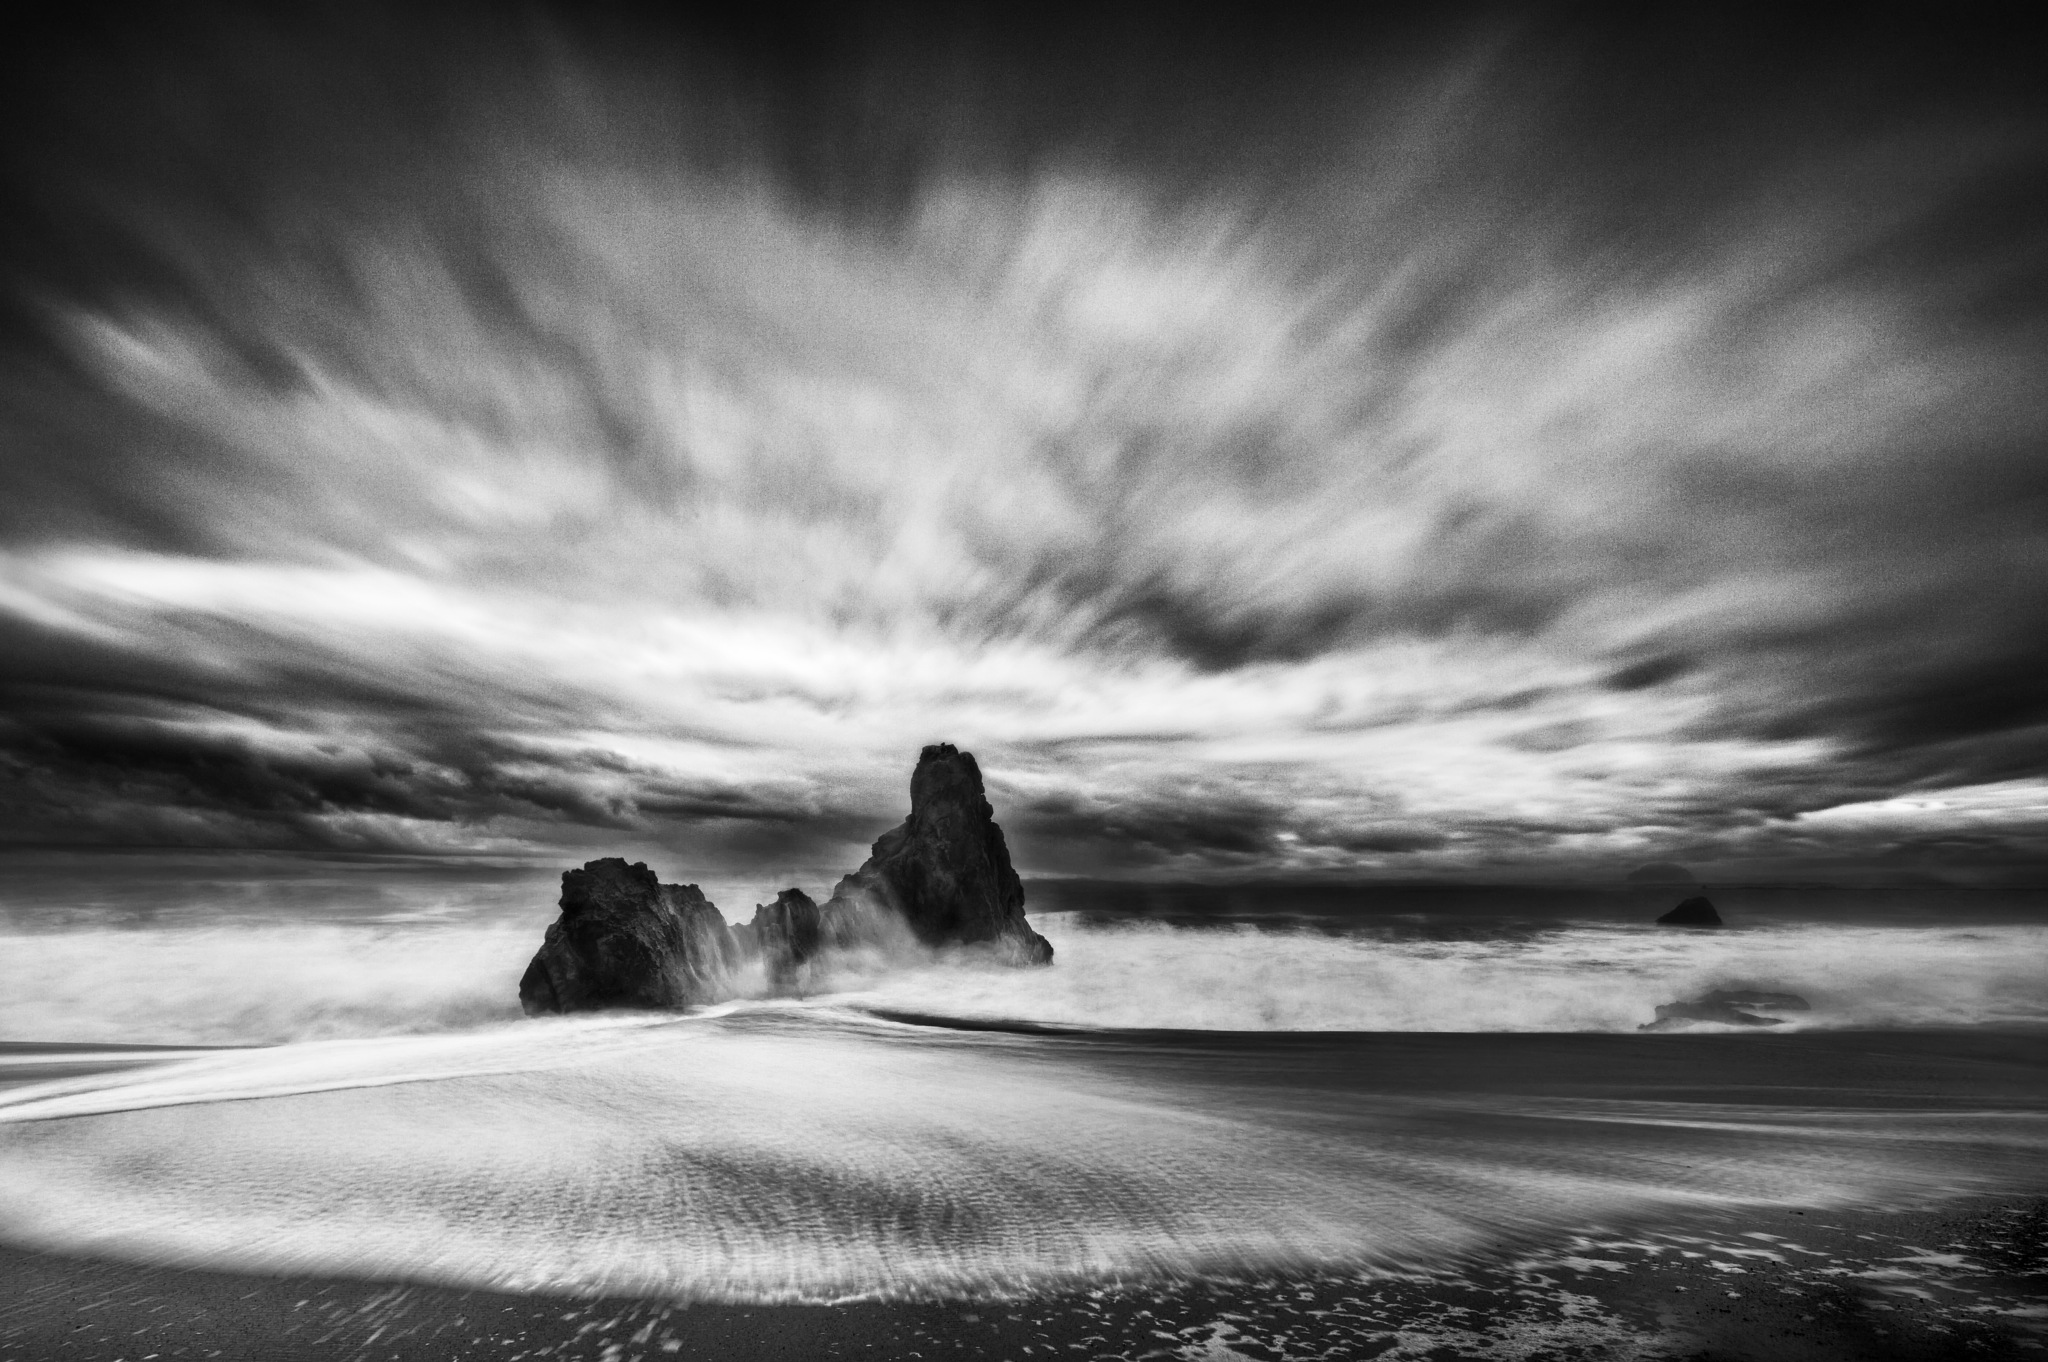 Clouds 3 by Dianachang